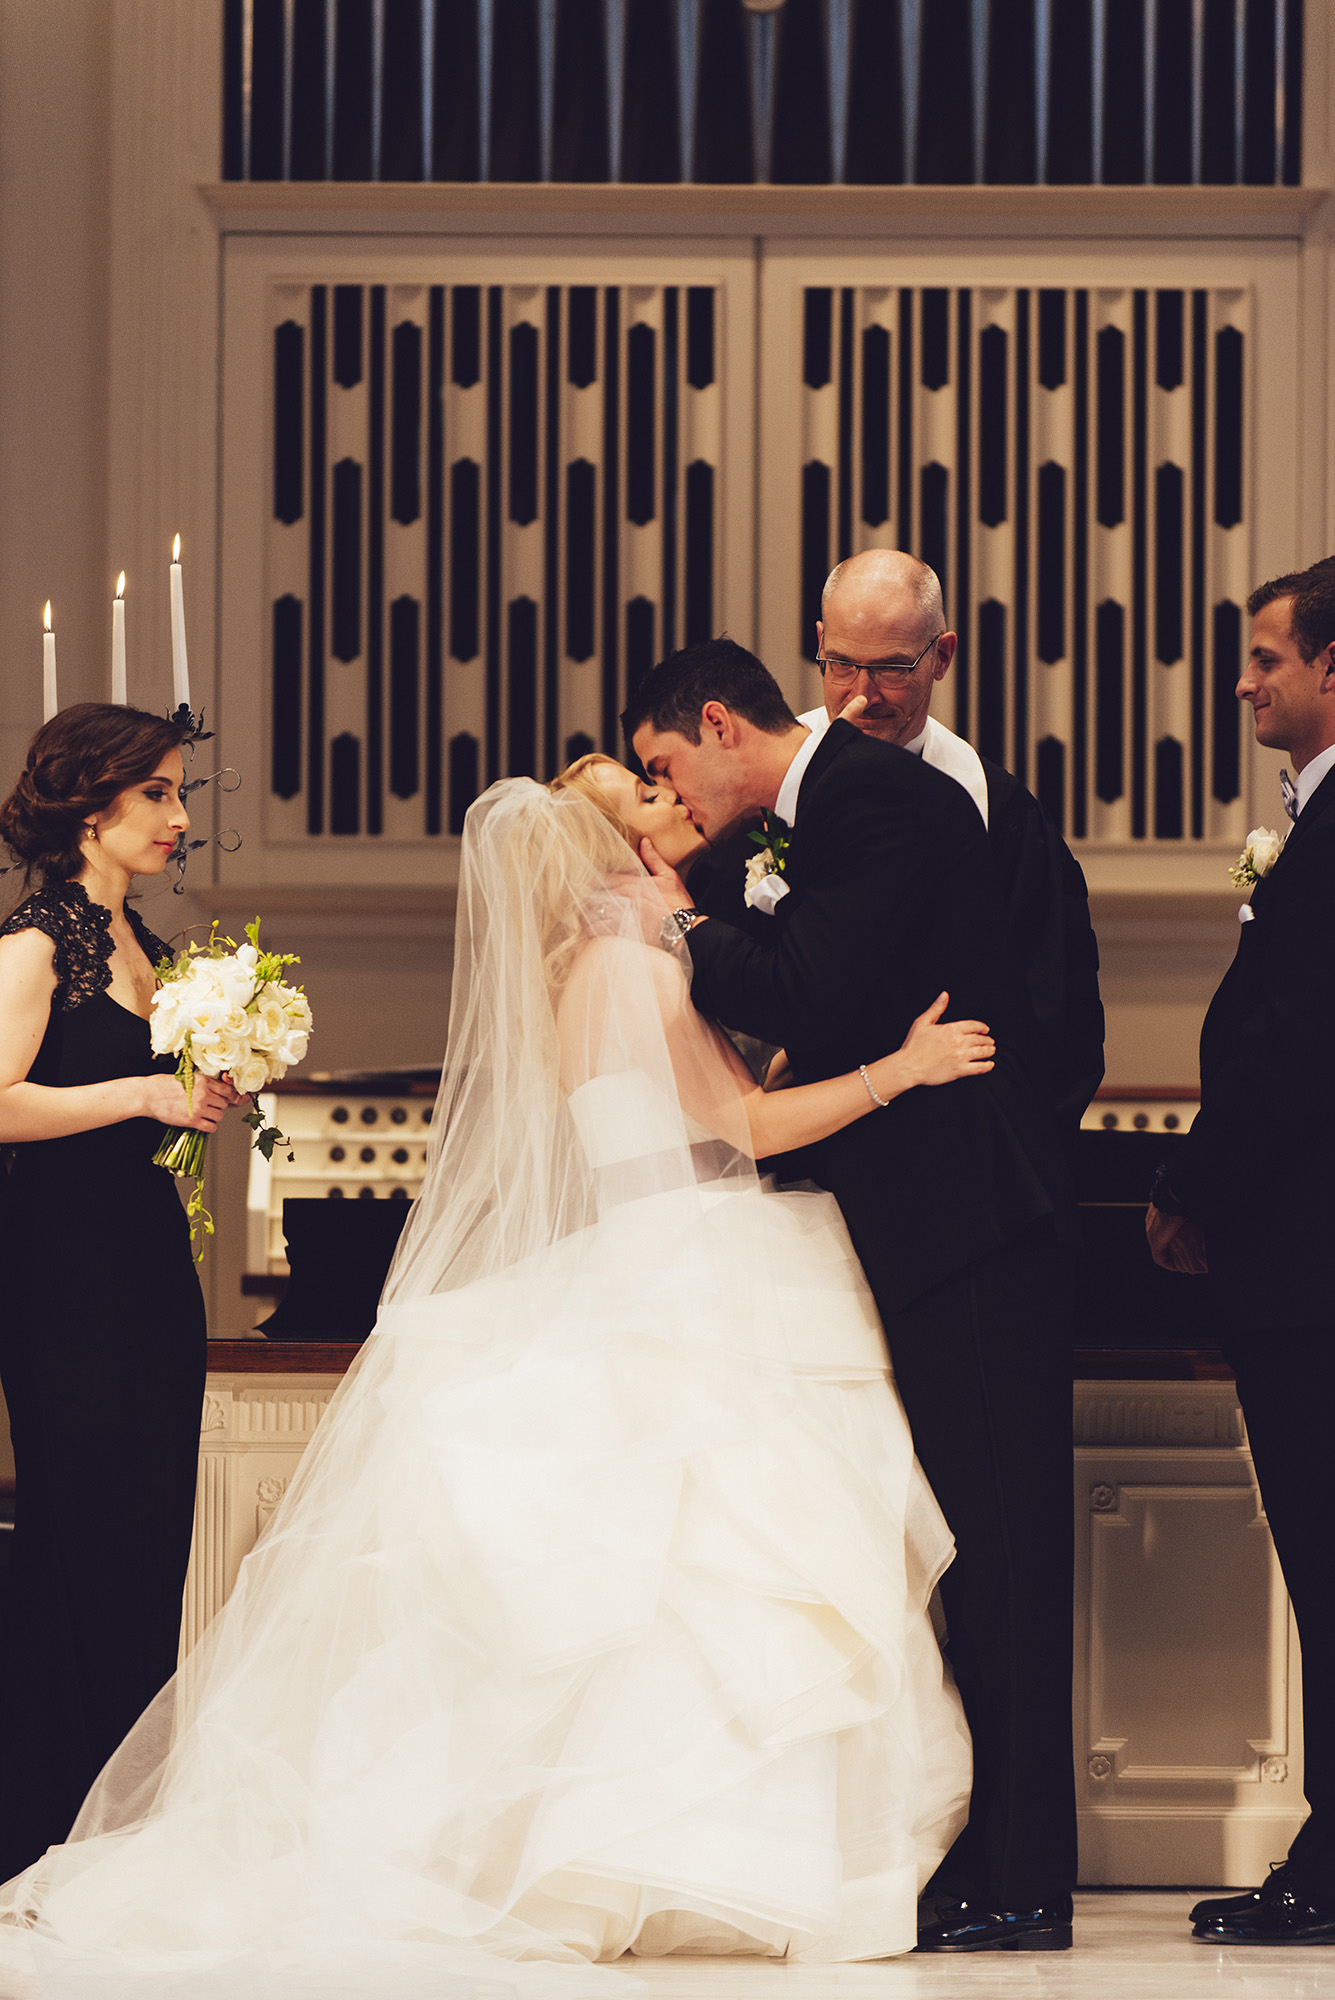 16 Hotel DuPont Wedding First and Central Wedding Ceremony Kiss.jpg